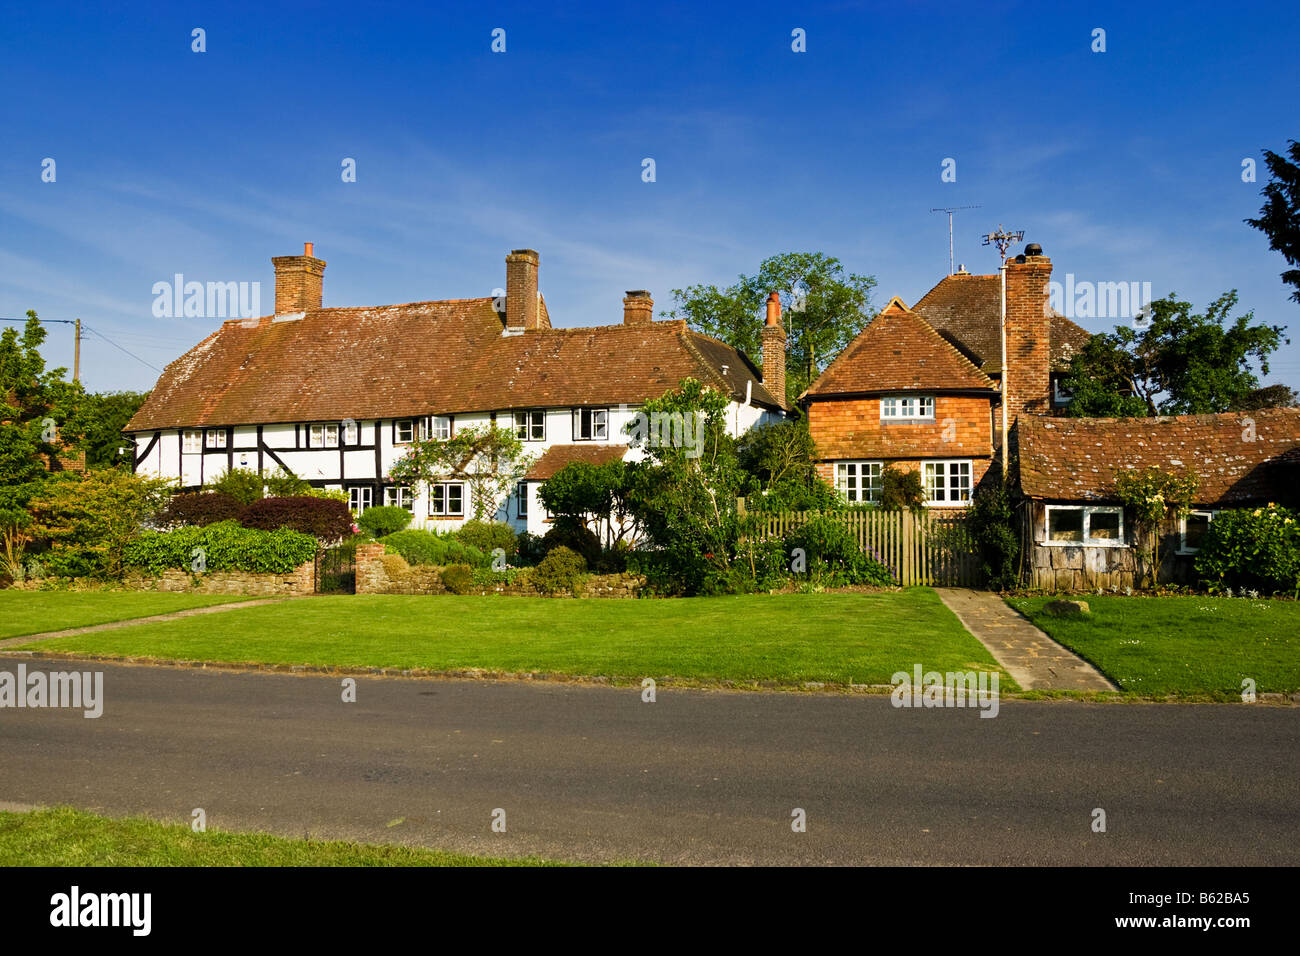 West Sussex - old houses in the village of Lurgashall, West Sussex, England, UK - Stock Image